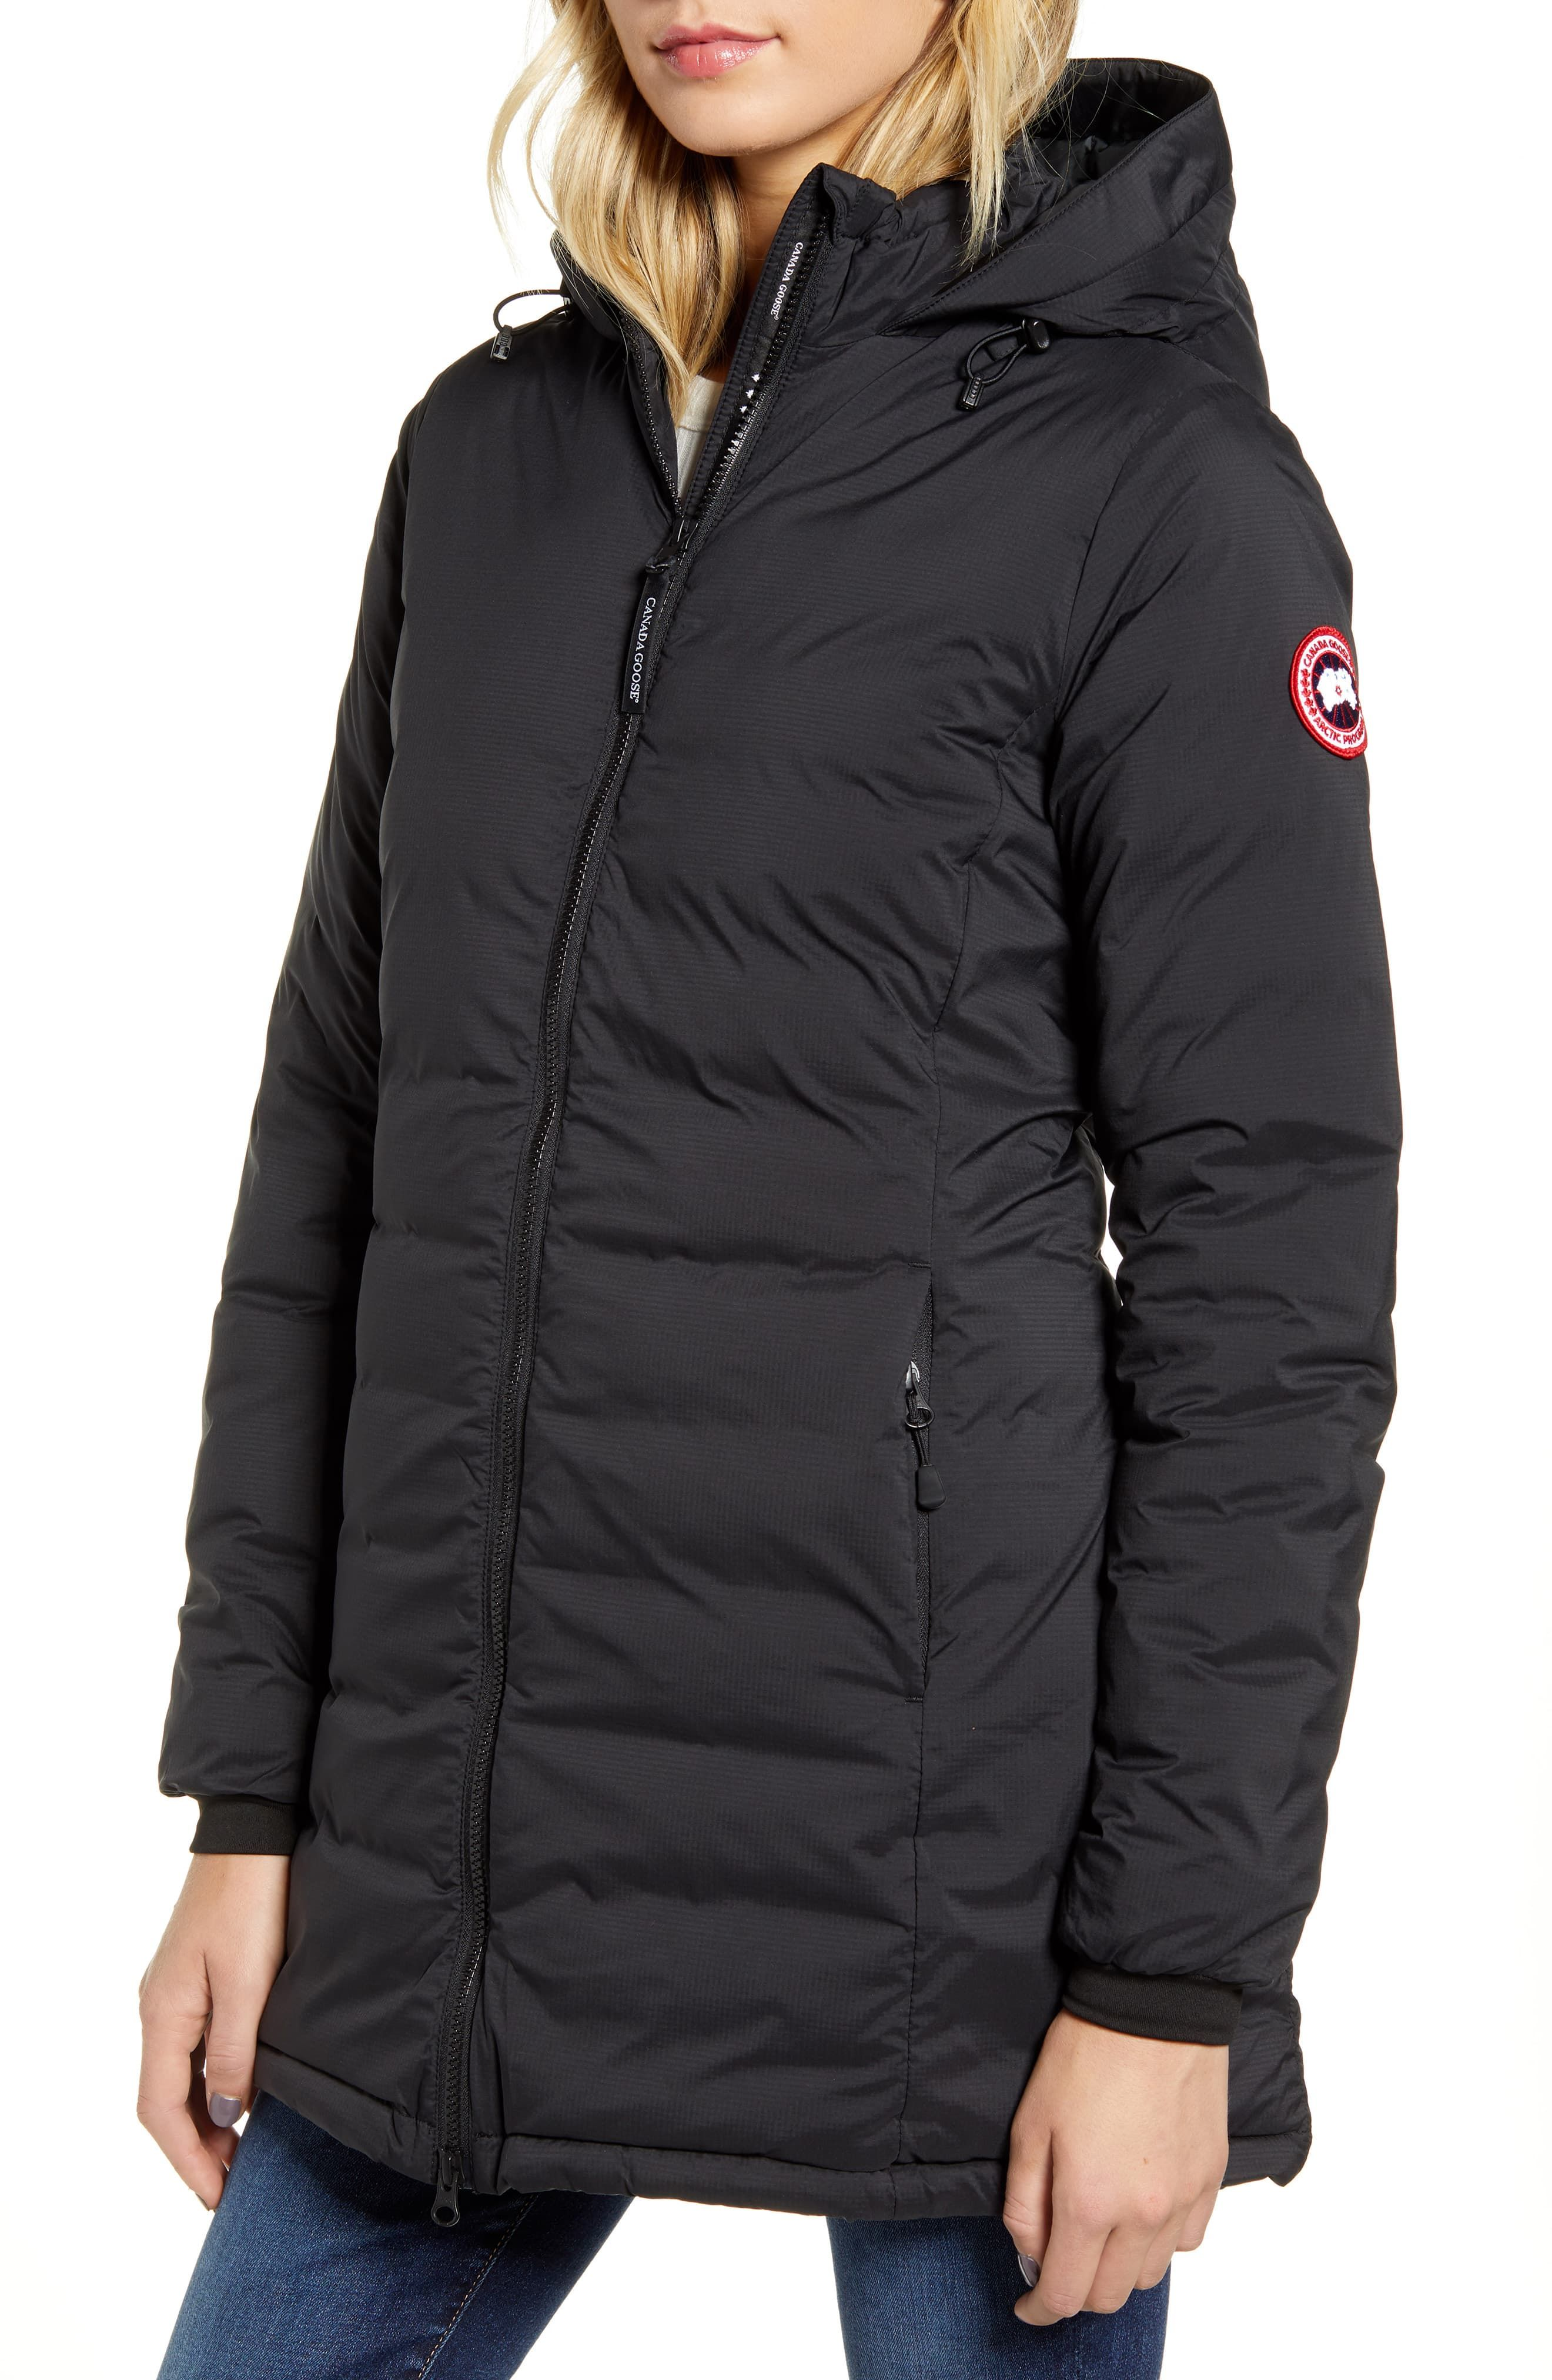 Canada Goose Camp Hooded Down Jacket Nordstrom Down Jacket Slim Fit Jackets Jackets